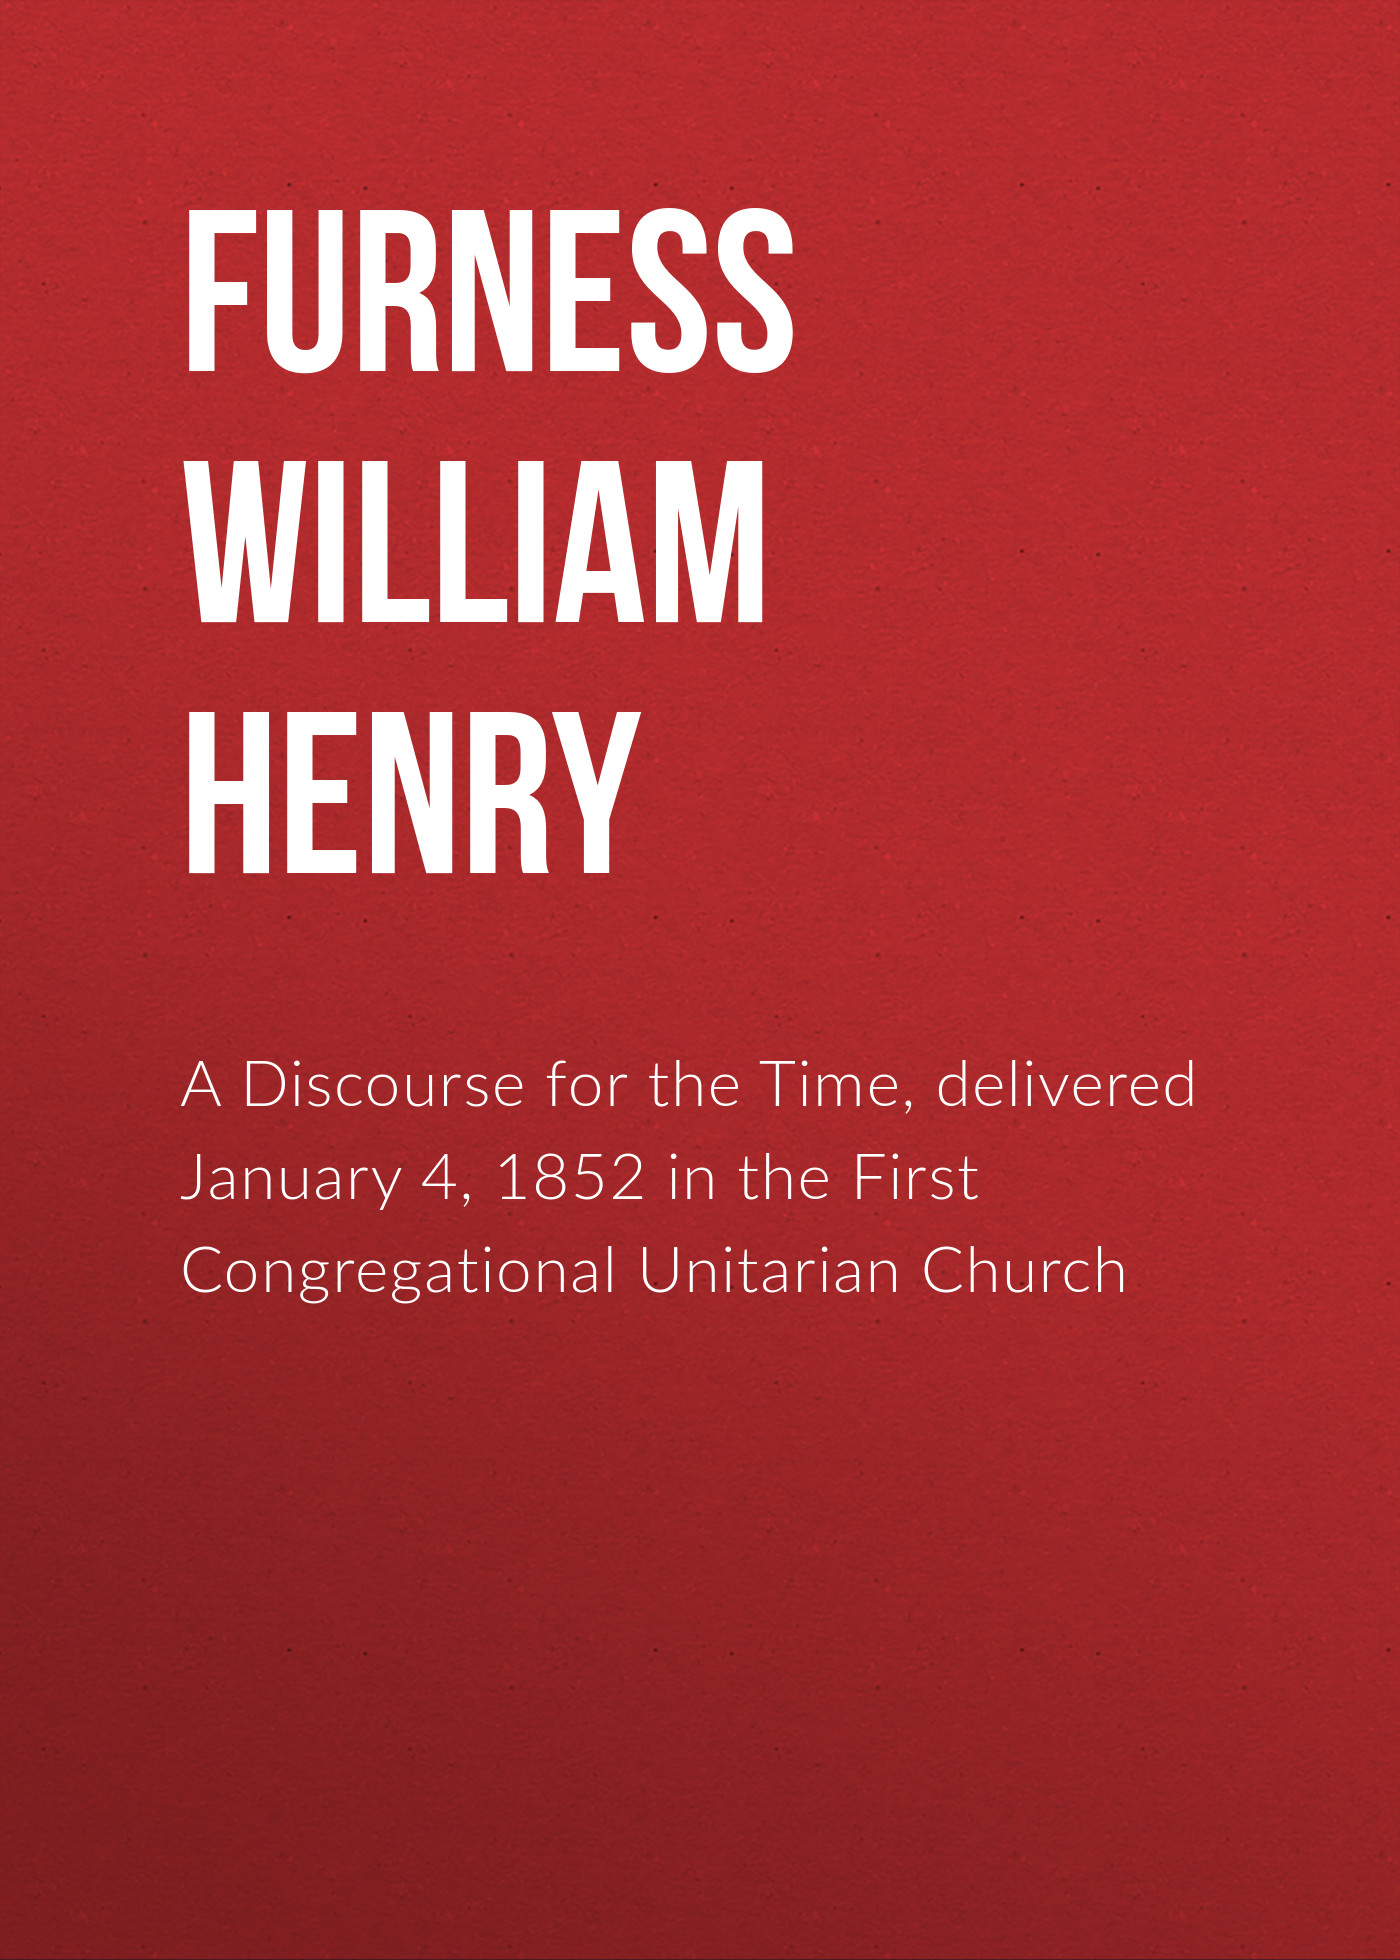 Furness William Henry A Discourse for the Time, delivered January 4, 1852 in the First Congregational Unitarian Church директ бокс dbx di4